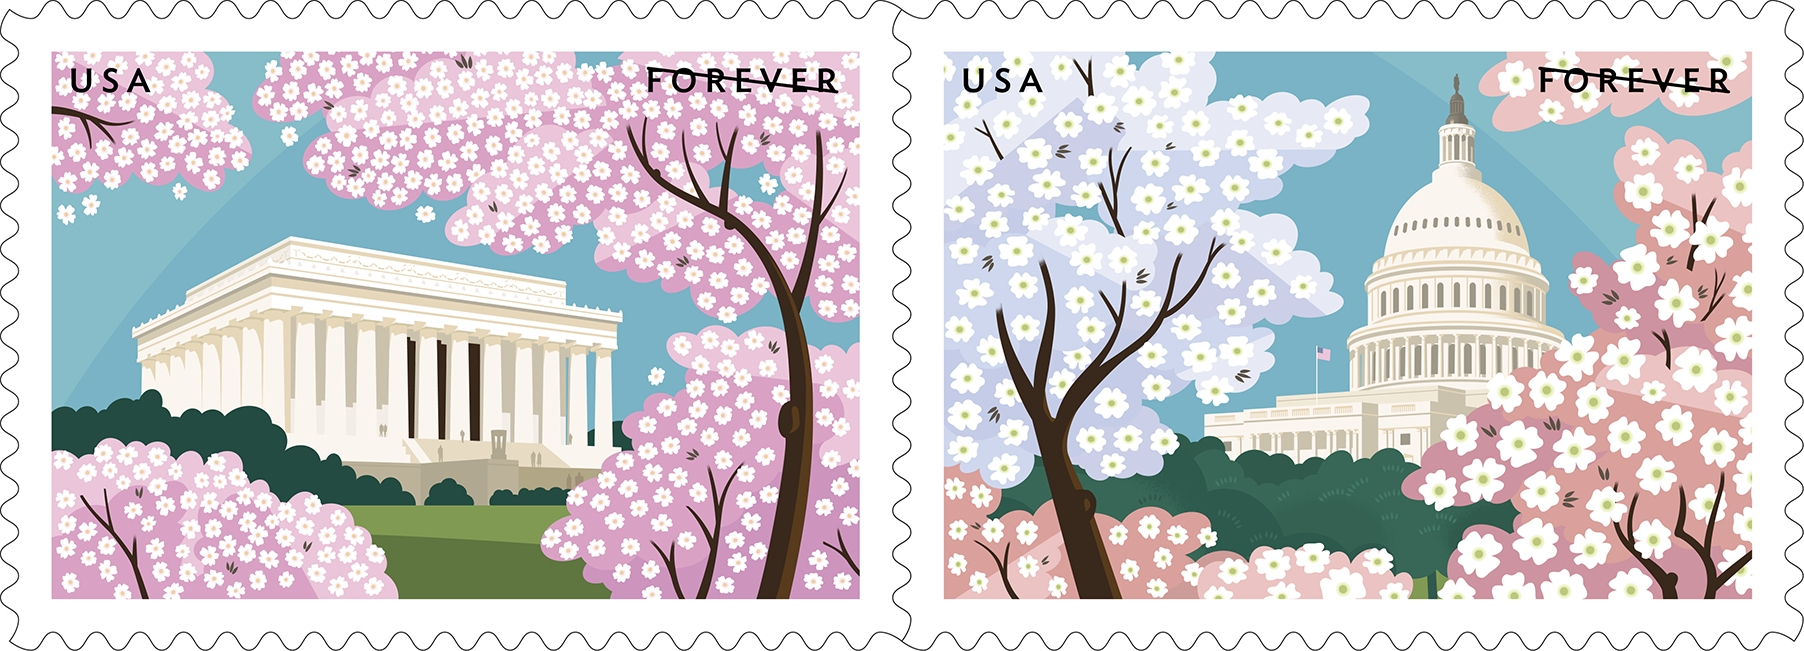 Usps New Issues 2015 Stamp News Now - United-states-forever-stamps